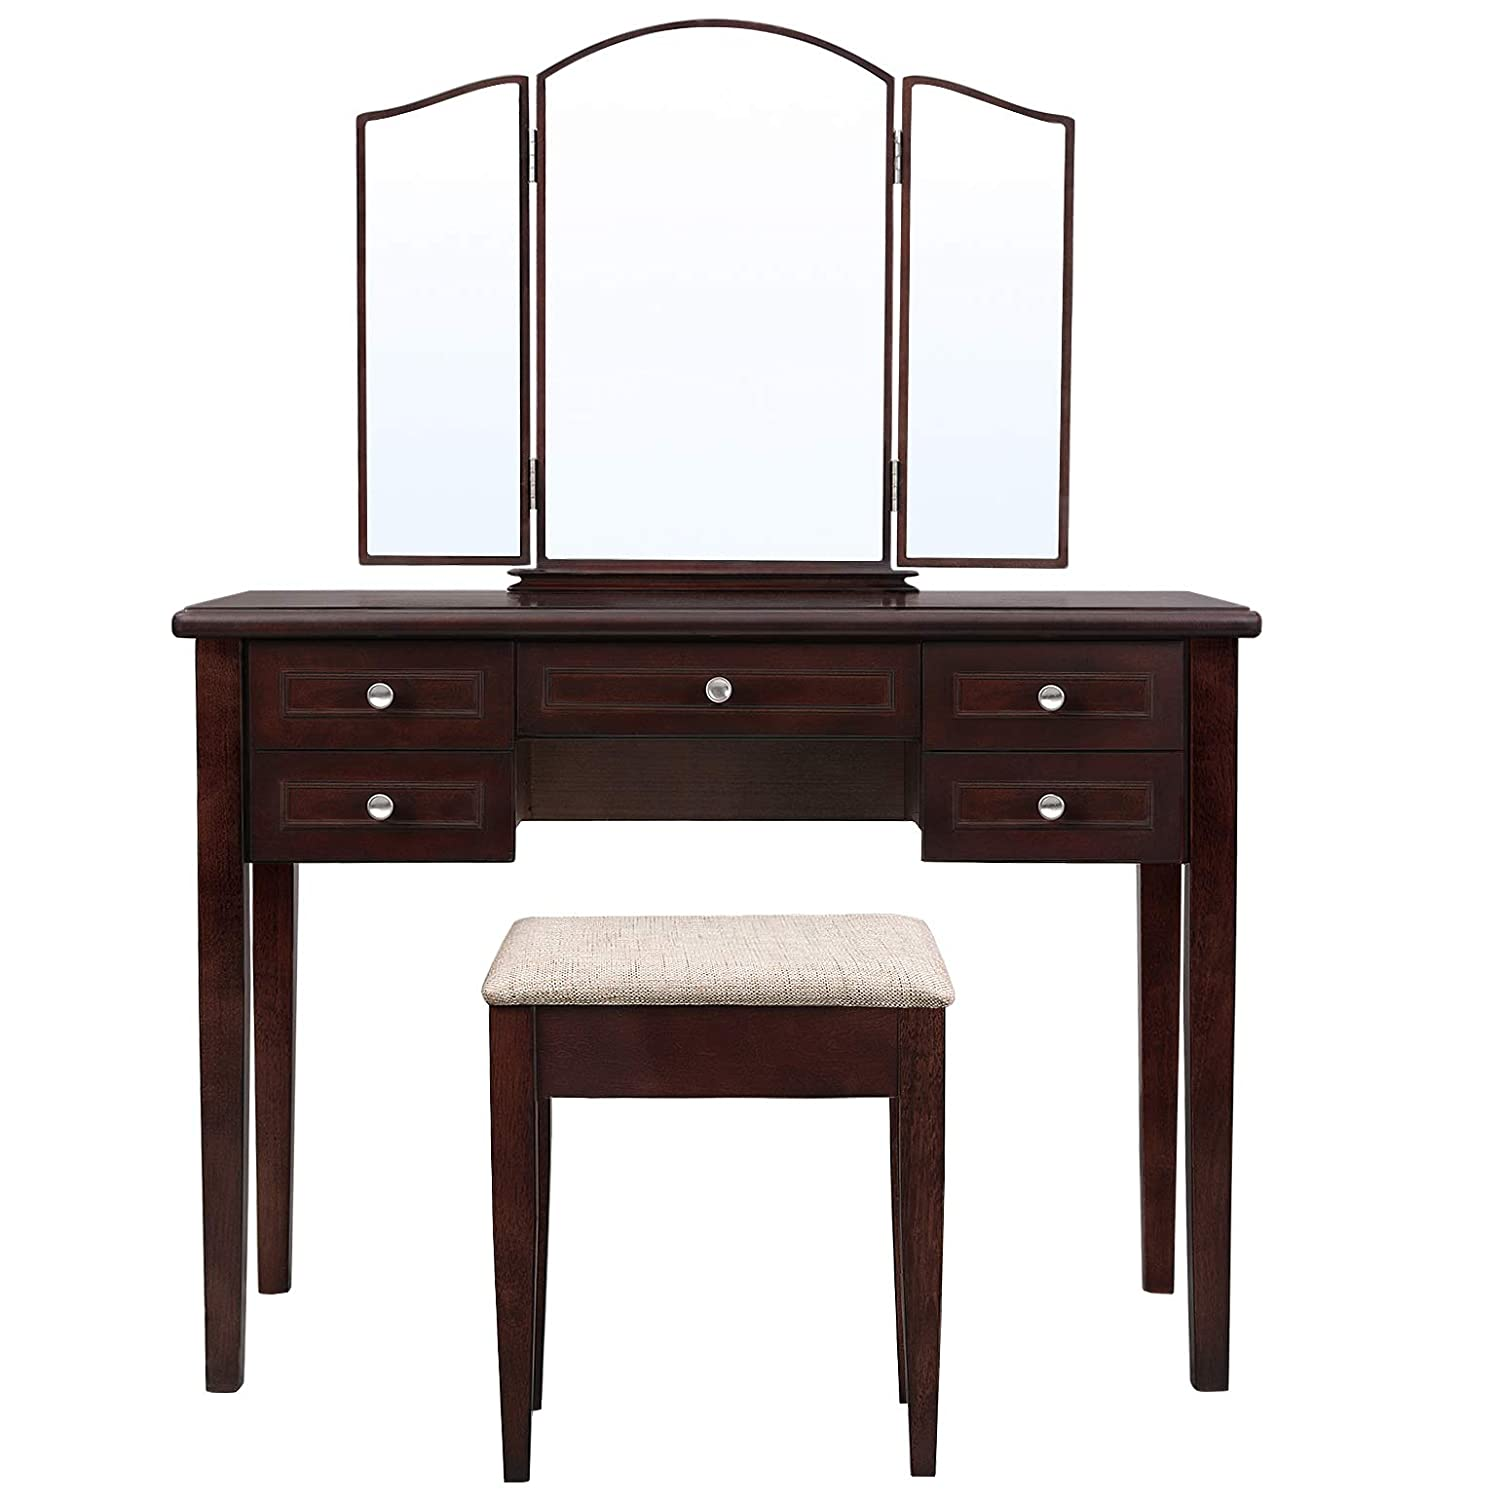 VASAGLE Vanity Set with Tri-Fold Mirror, Dressing Table with 5 Drawers, Desk with 1 Stool, Makeup and Cosmetics Storage, Multifunctional, Easy to Assemble, Brown URDT107BR